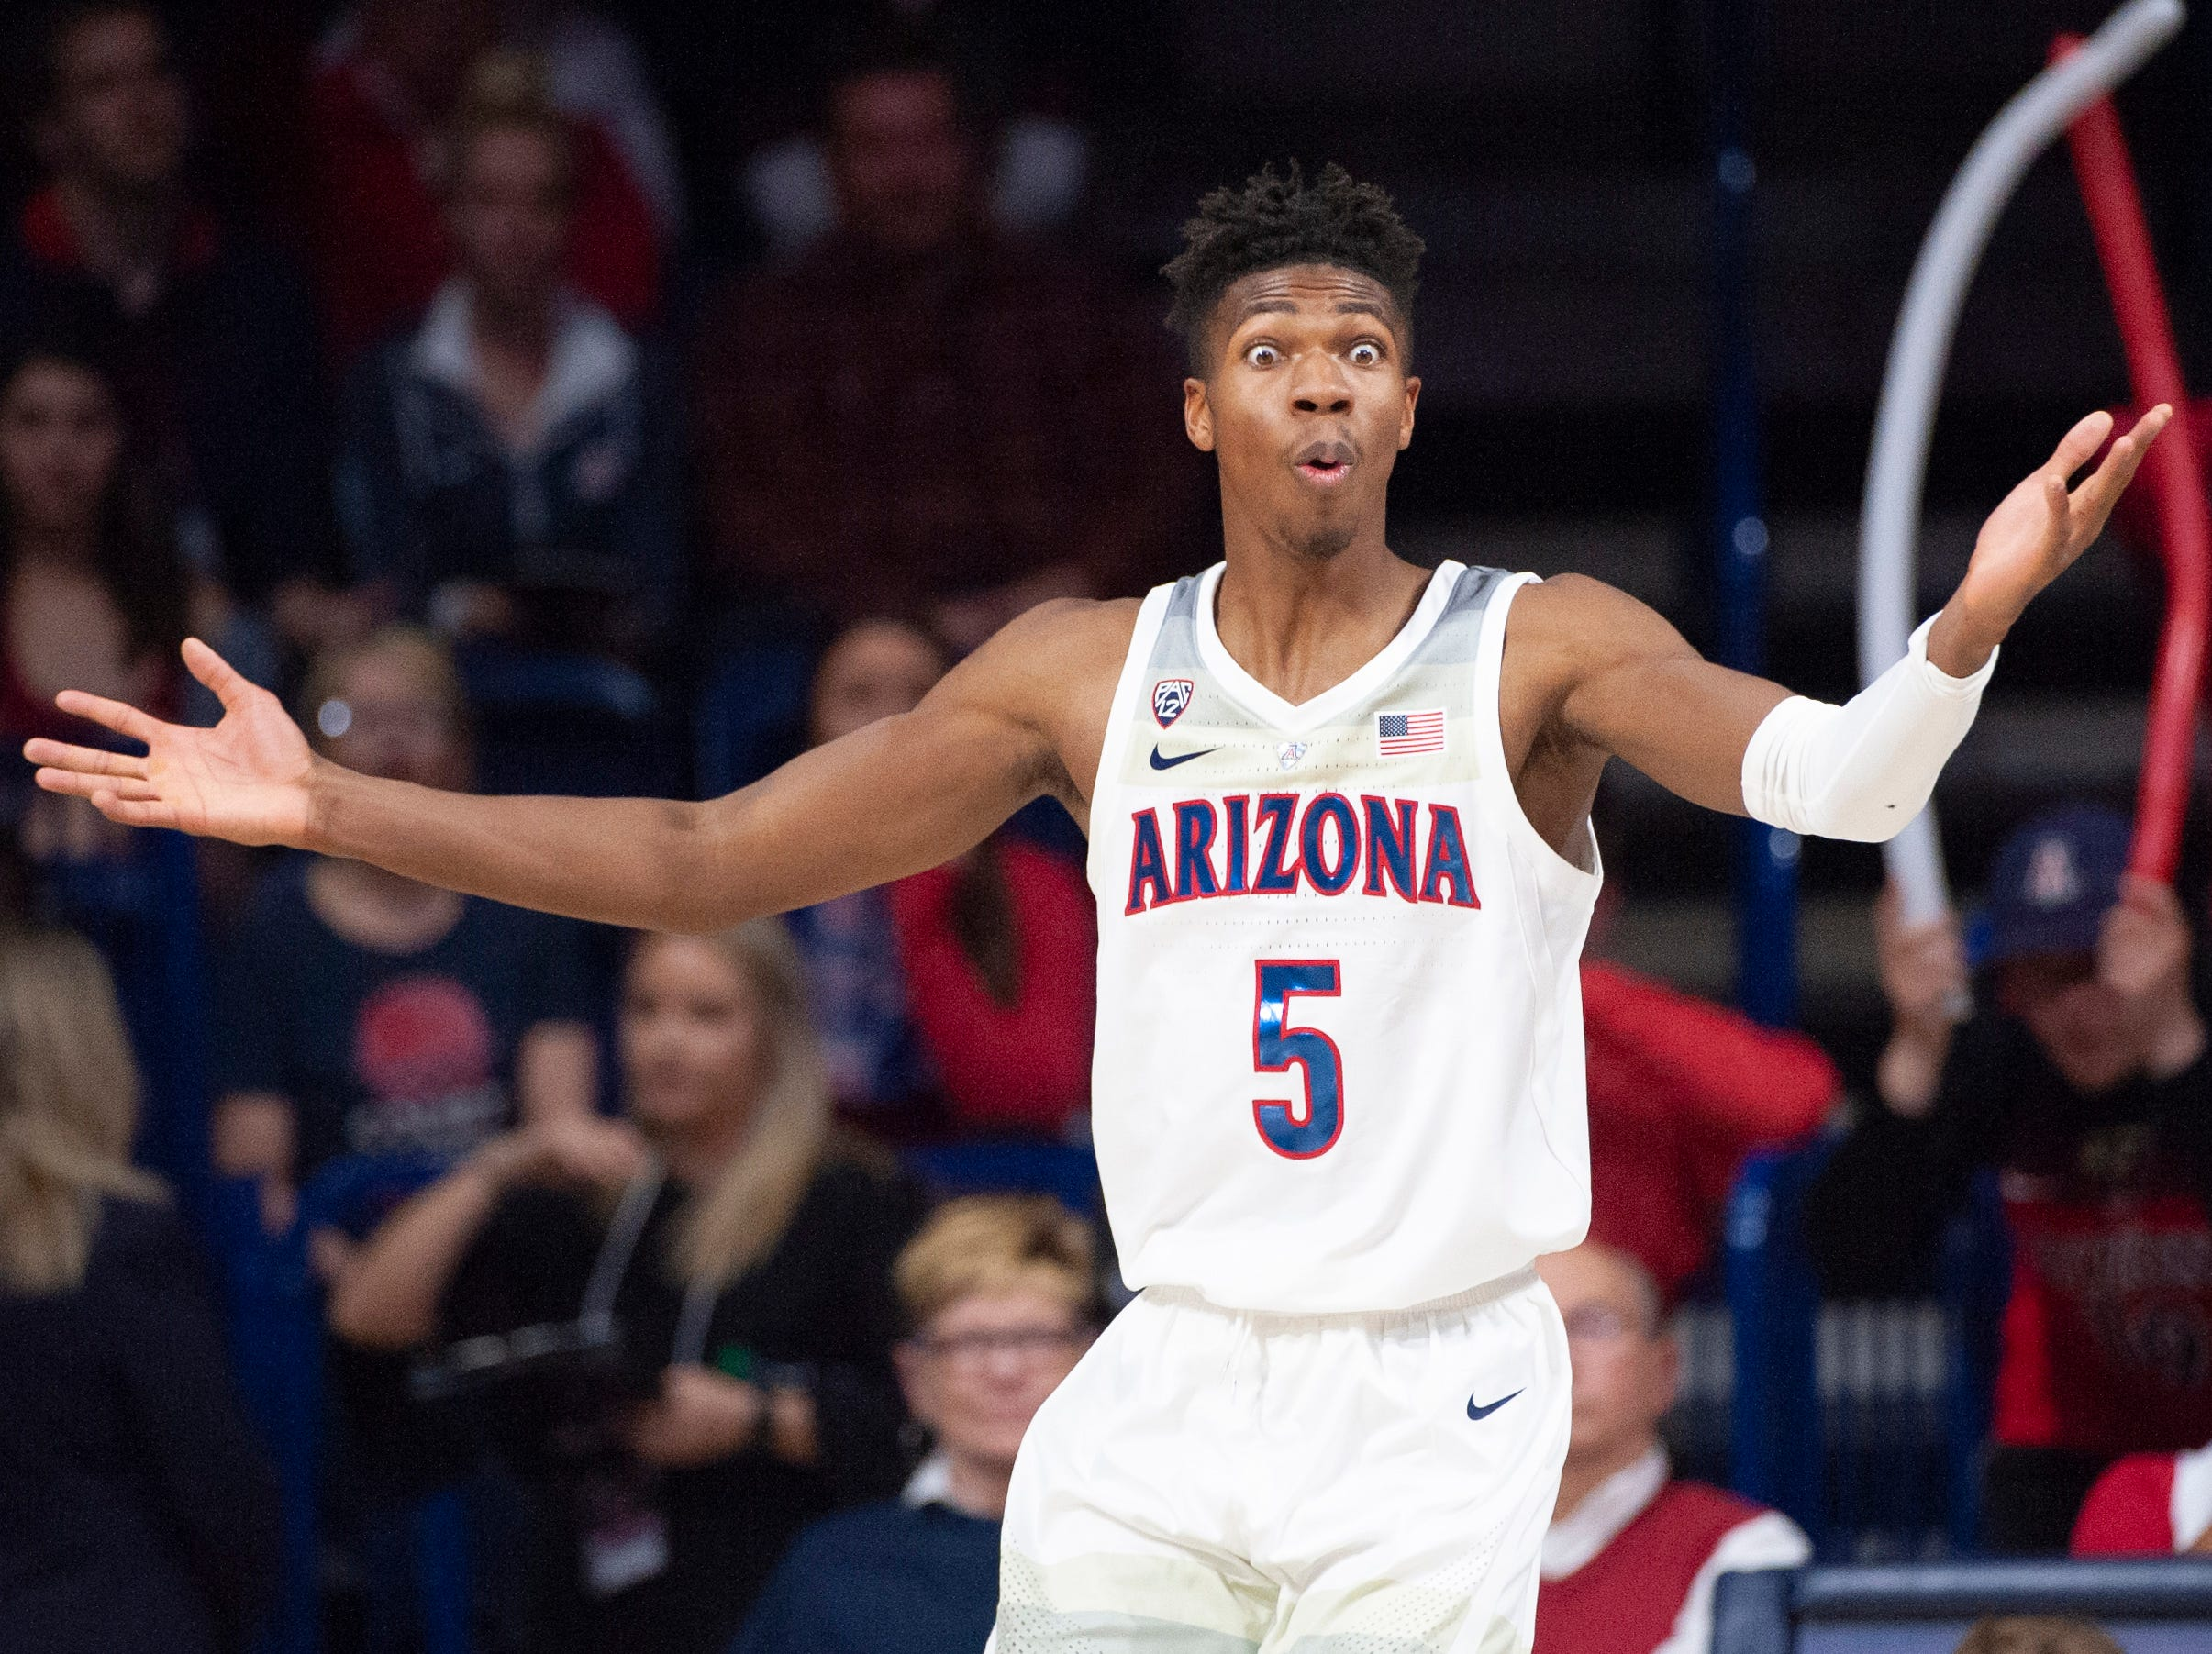 Feb. 24: Arizona Wildcats guard Brandon Randolph reacts to a call during the second half against the Stanford Cardinal at McKale Center.